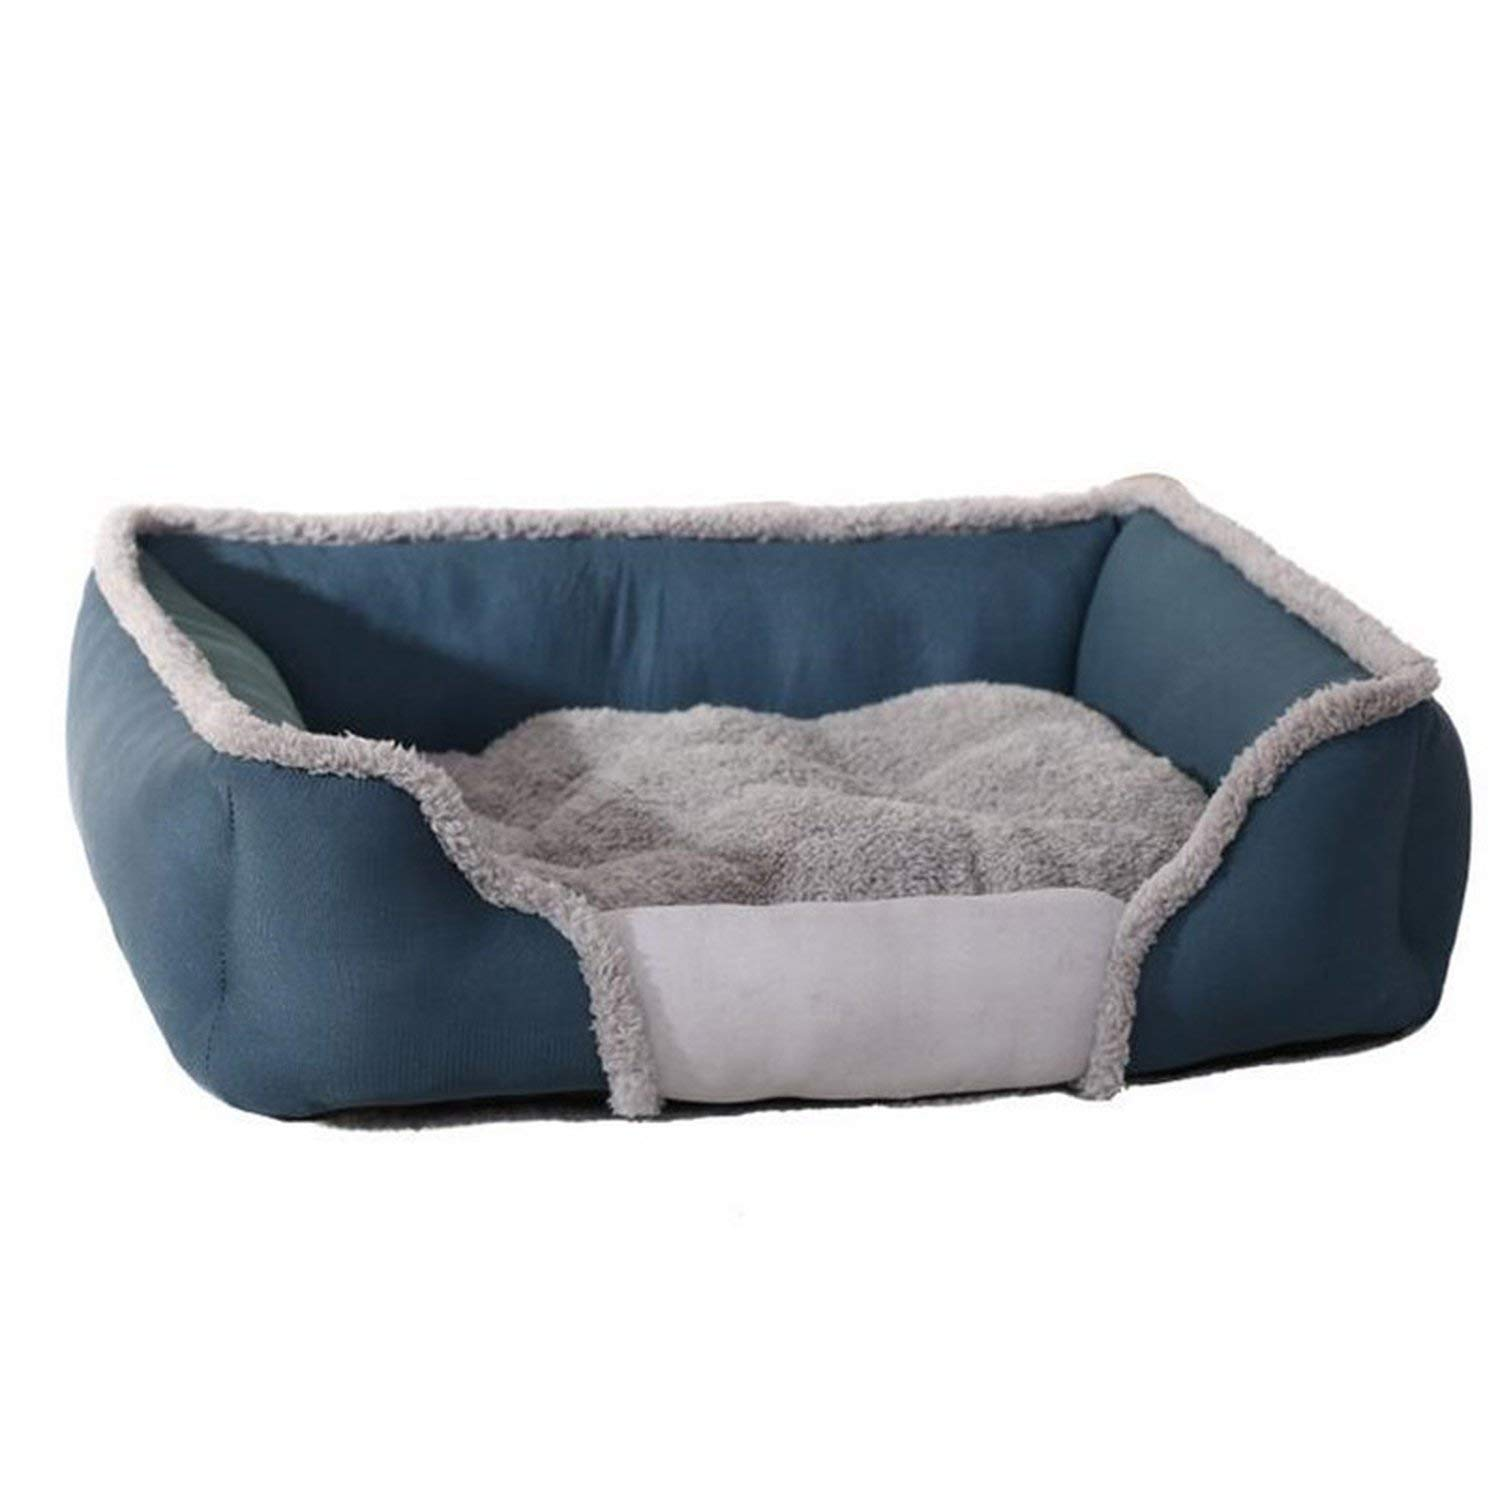 Amazon.com : longing-summer Dog Beds for Large Dogs Dog ...